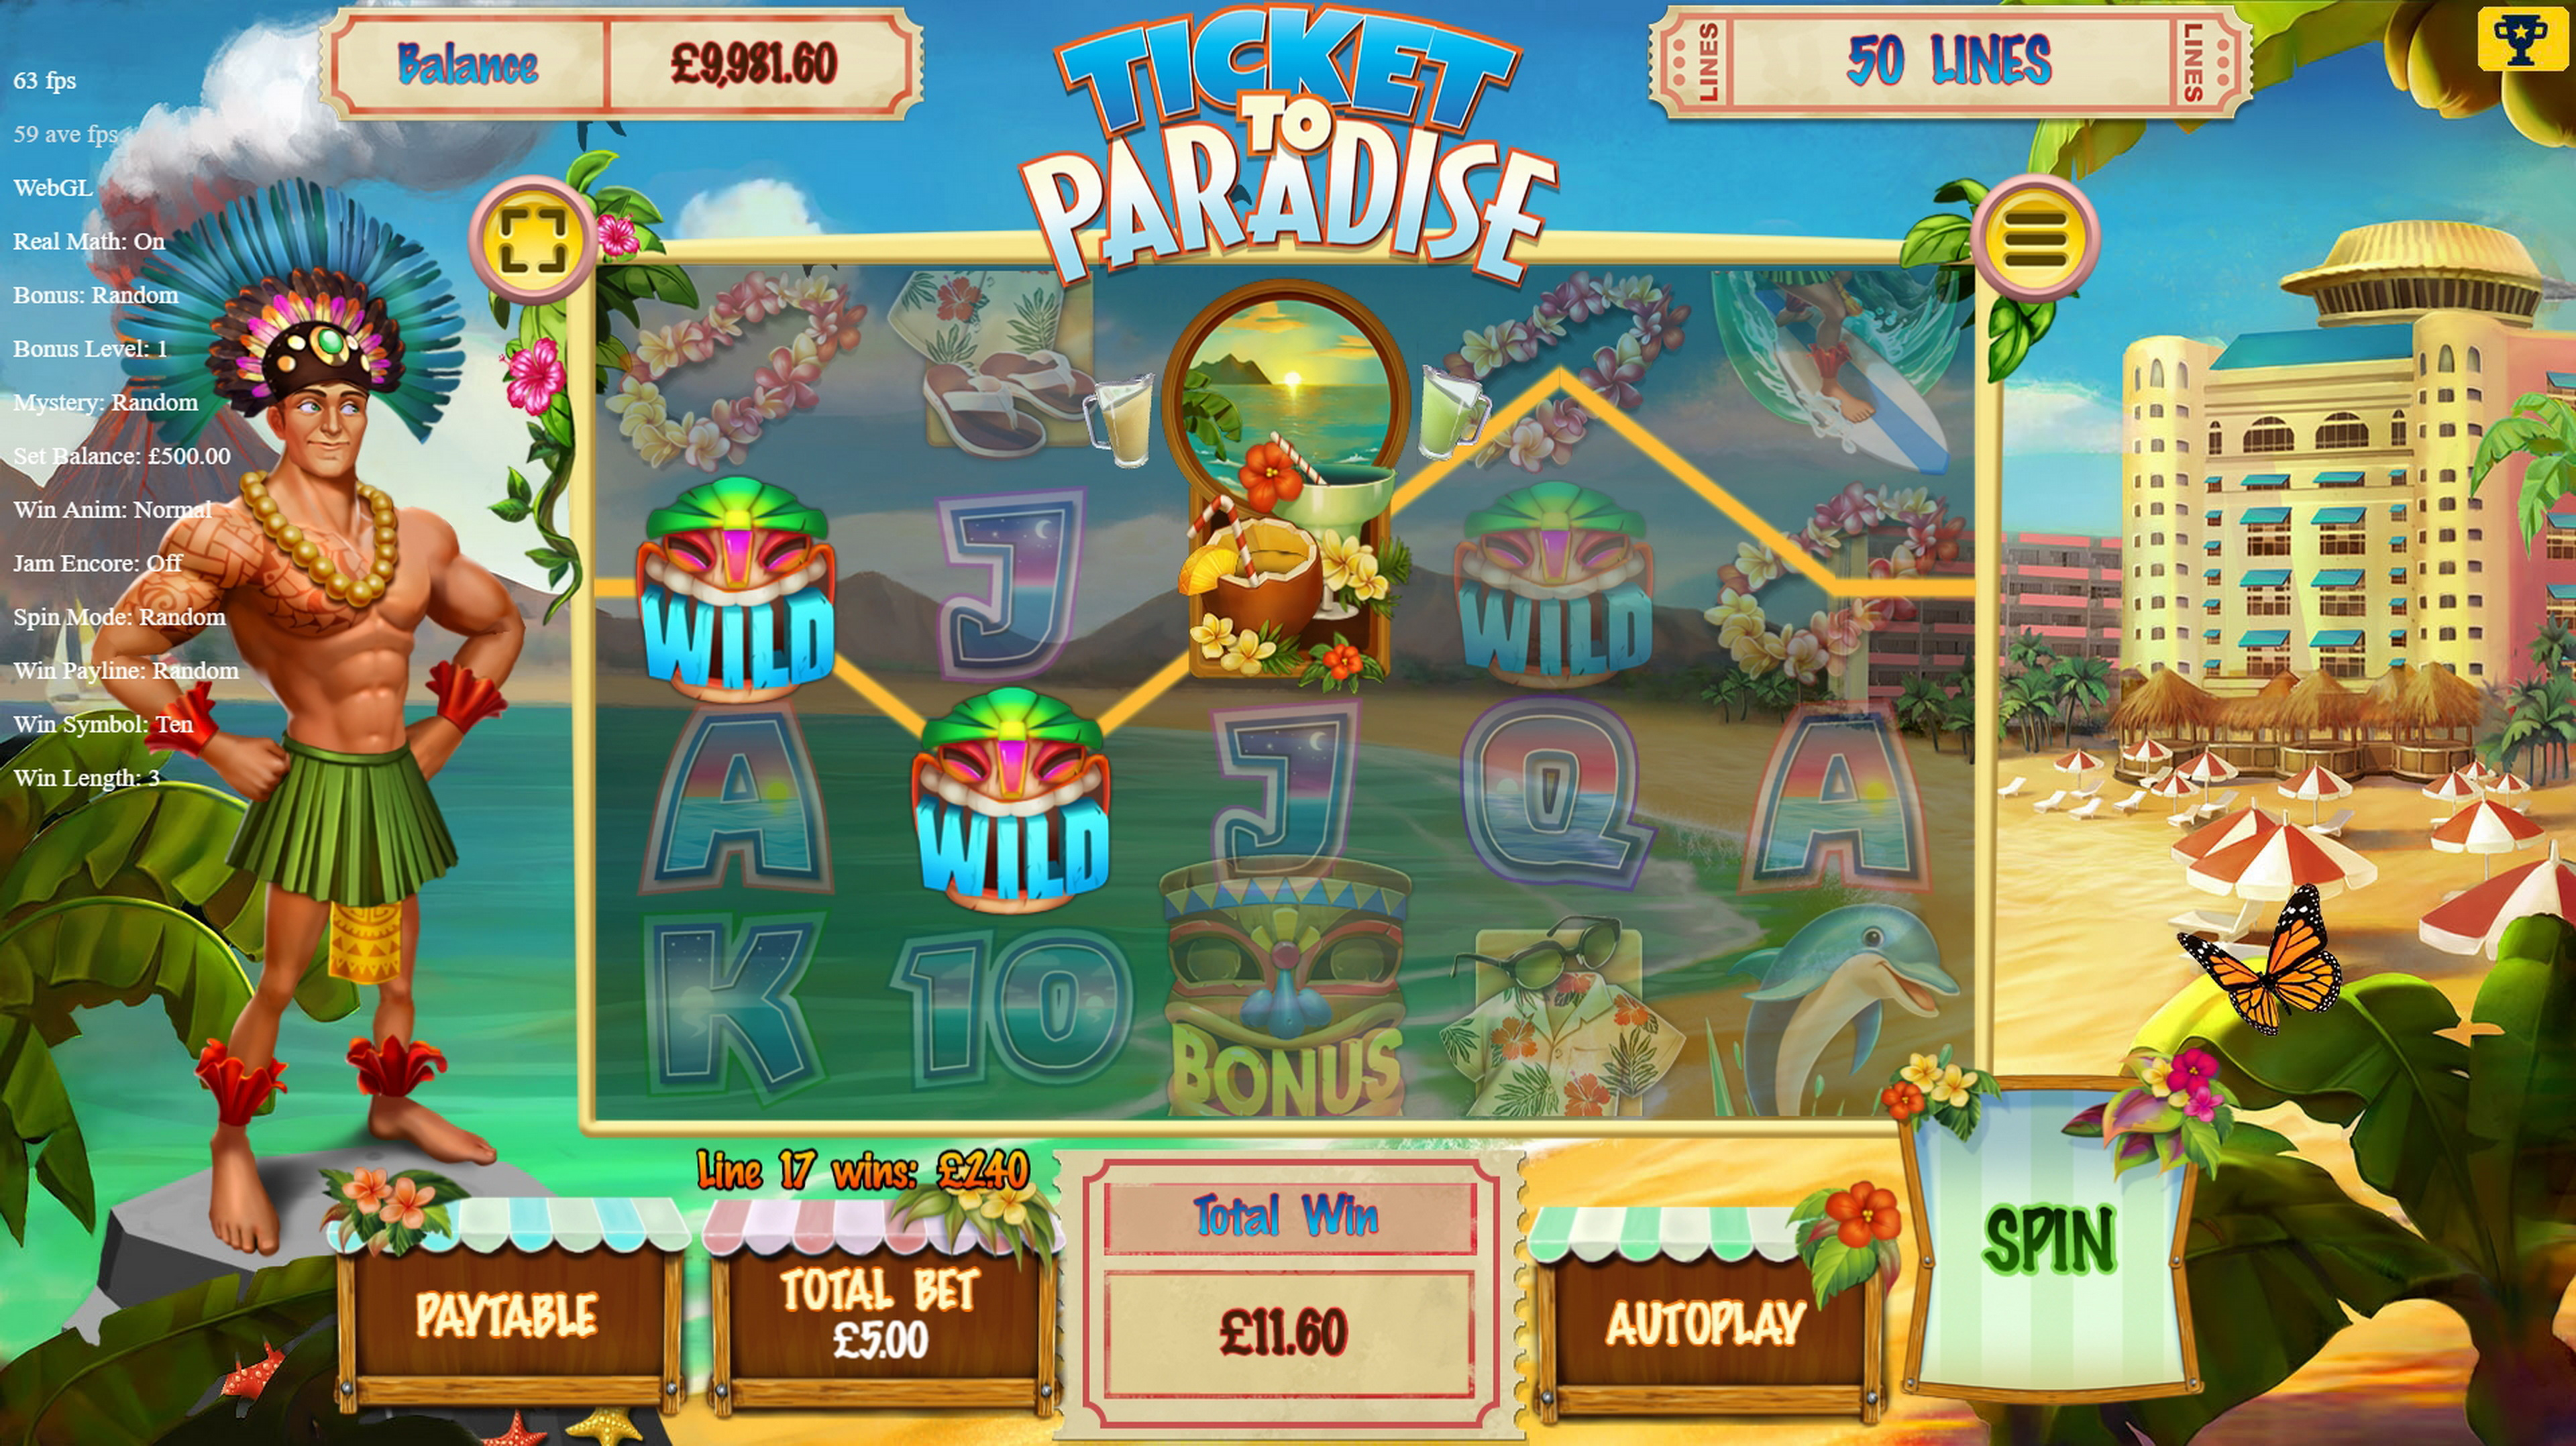 Win Money in Ticket to Paradise Free Slot Game by Asylum Labs Inc.